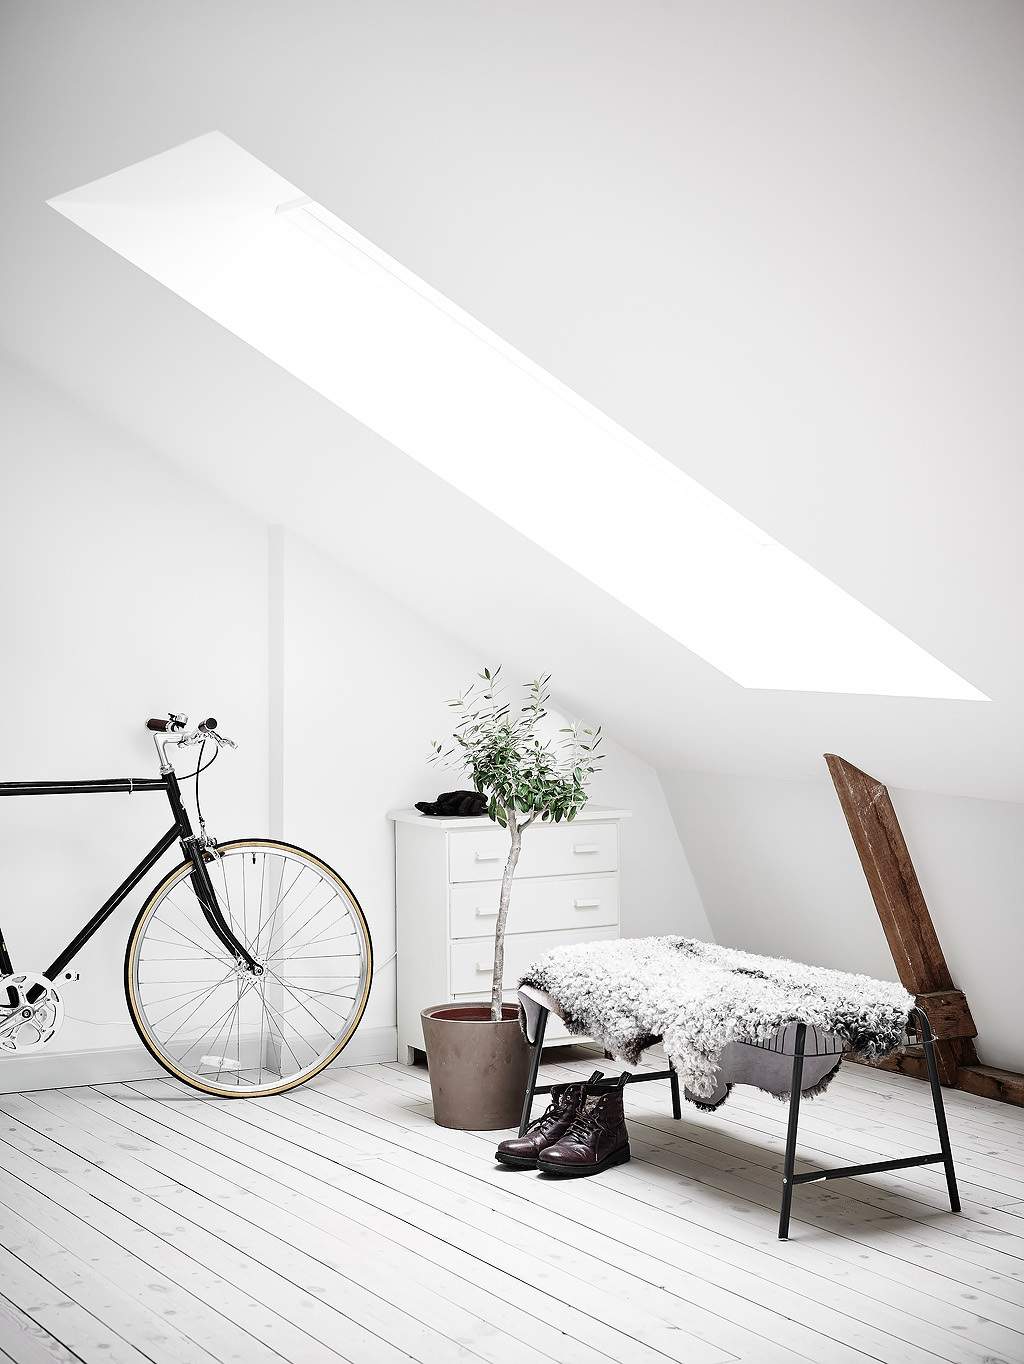 The entryway is filled with light through the attic window, the bench is covered with fur for comfort